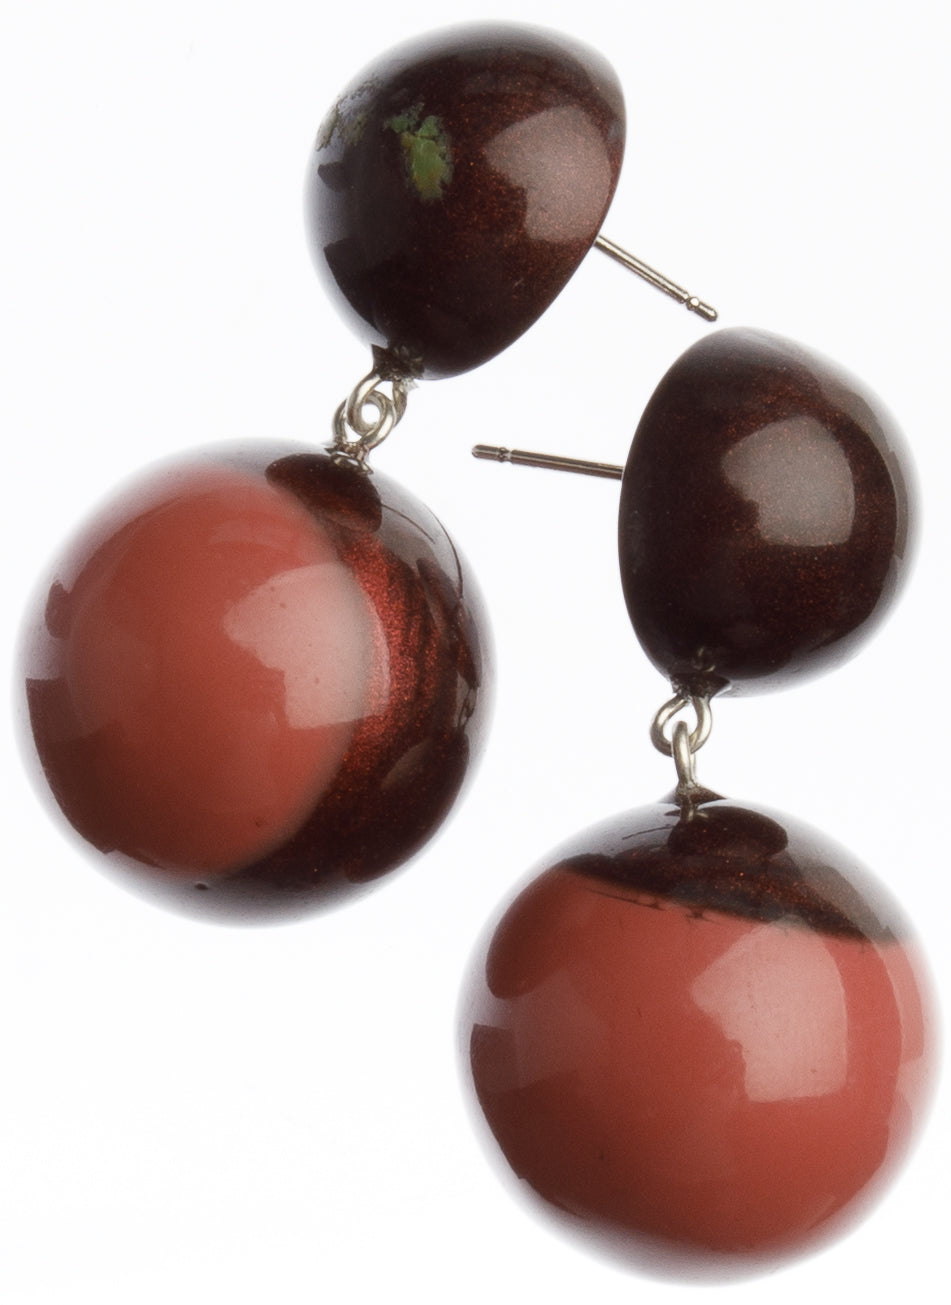 Bolas Earrings - 2 Beads - Dusty Rose